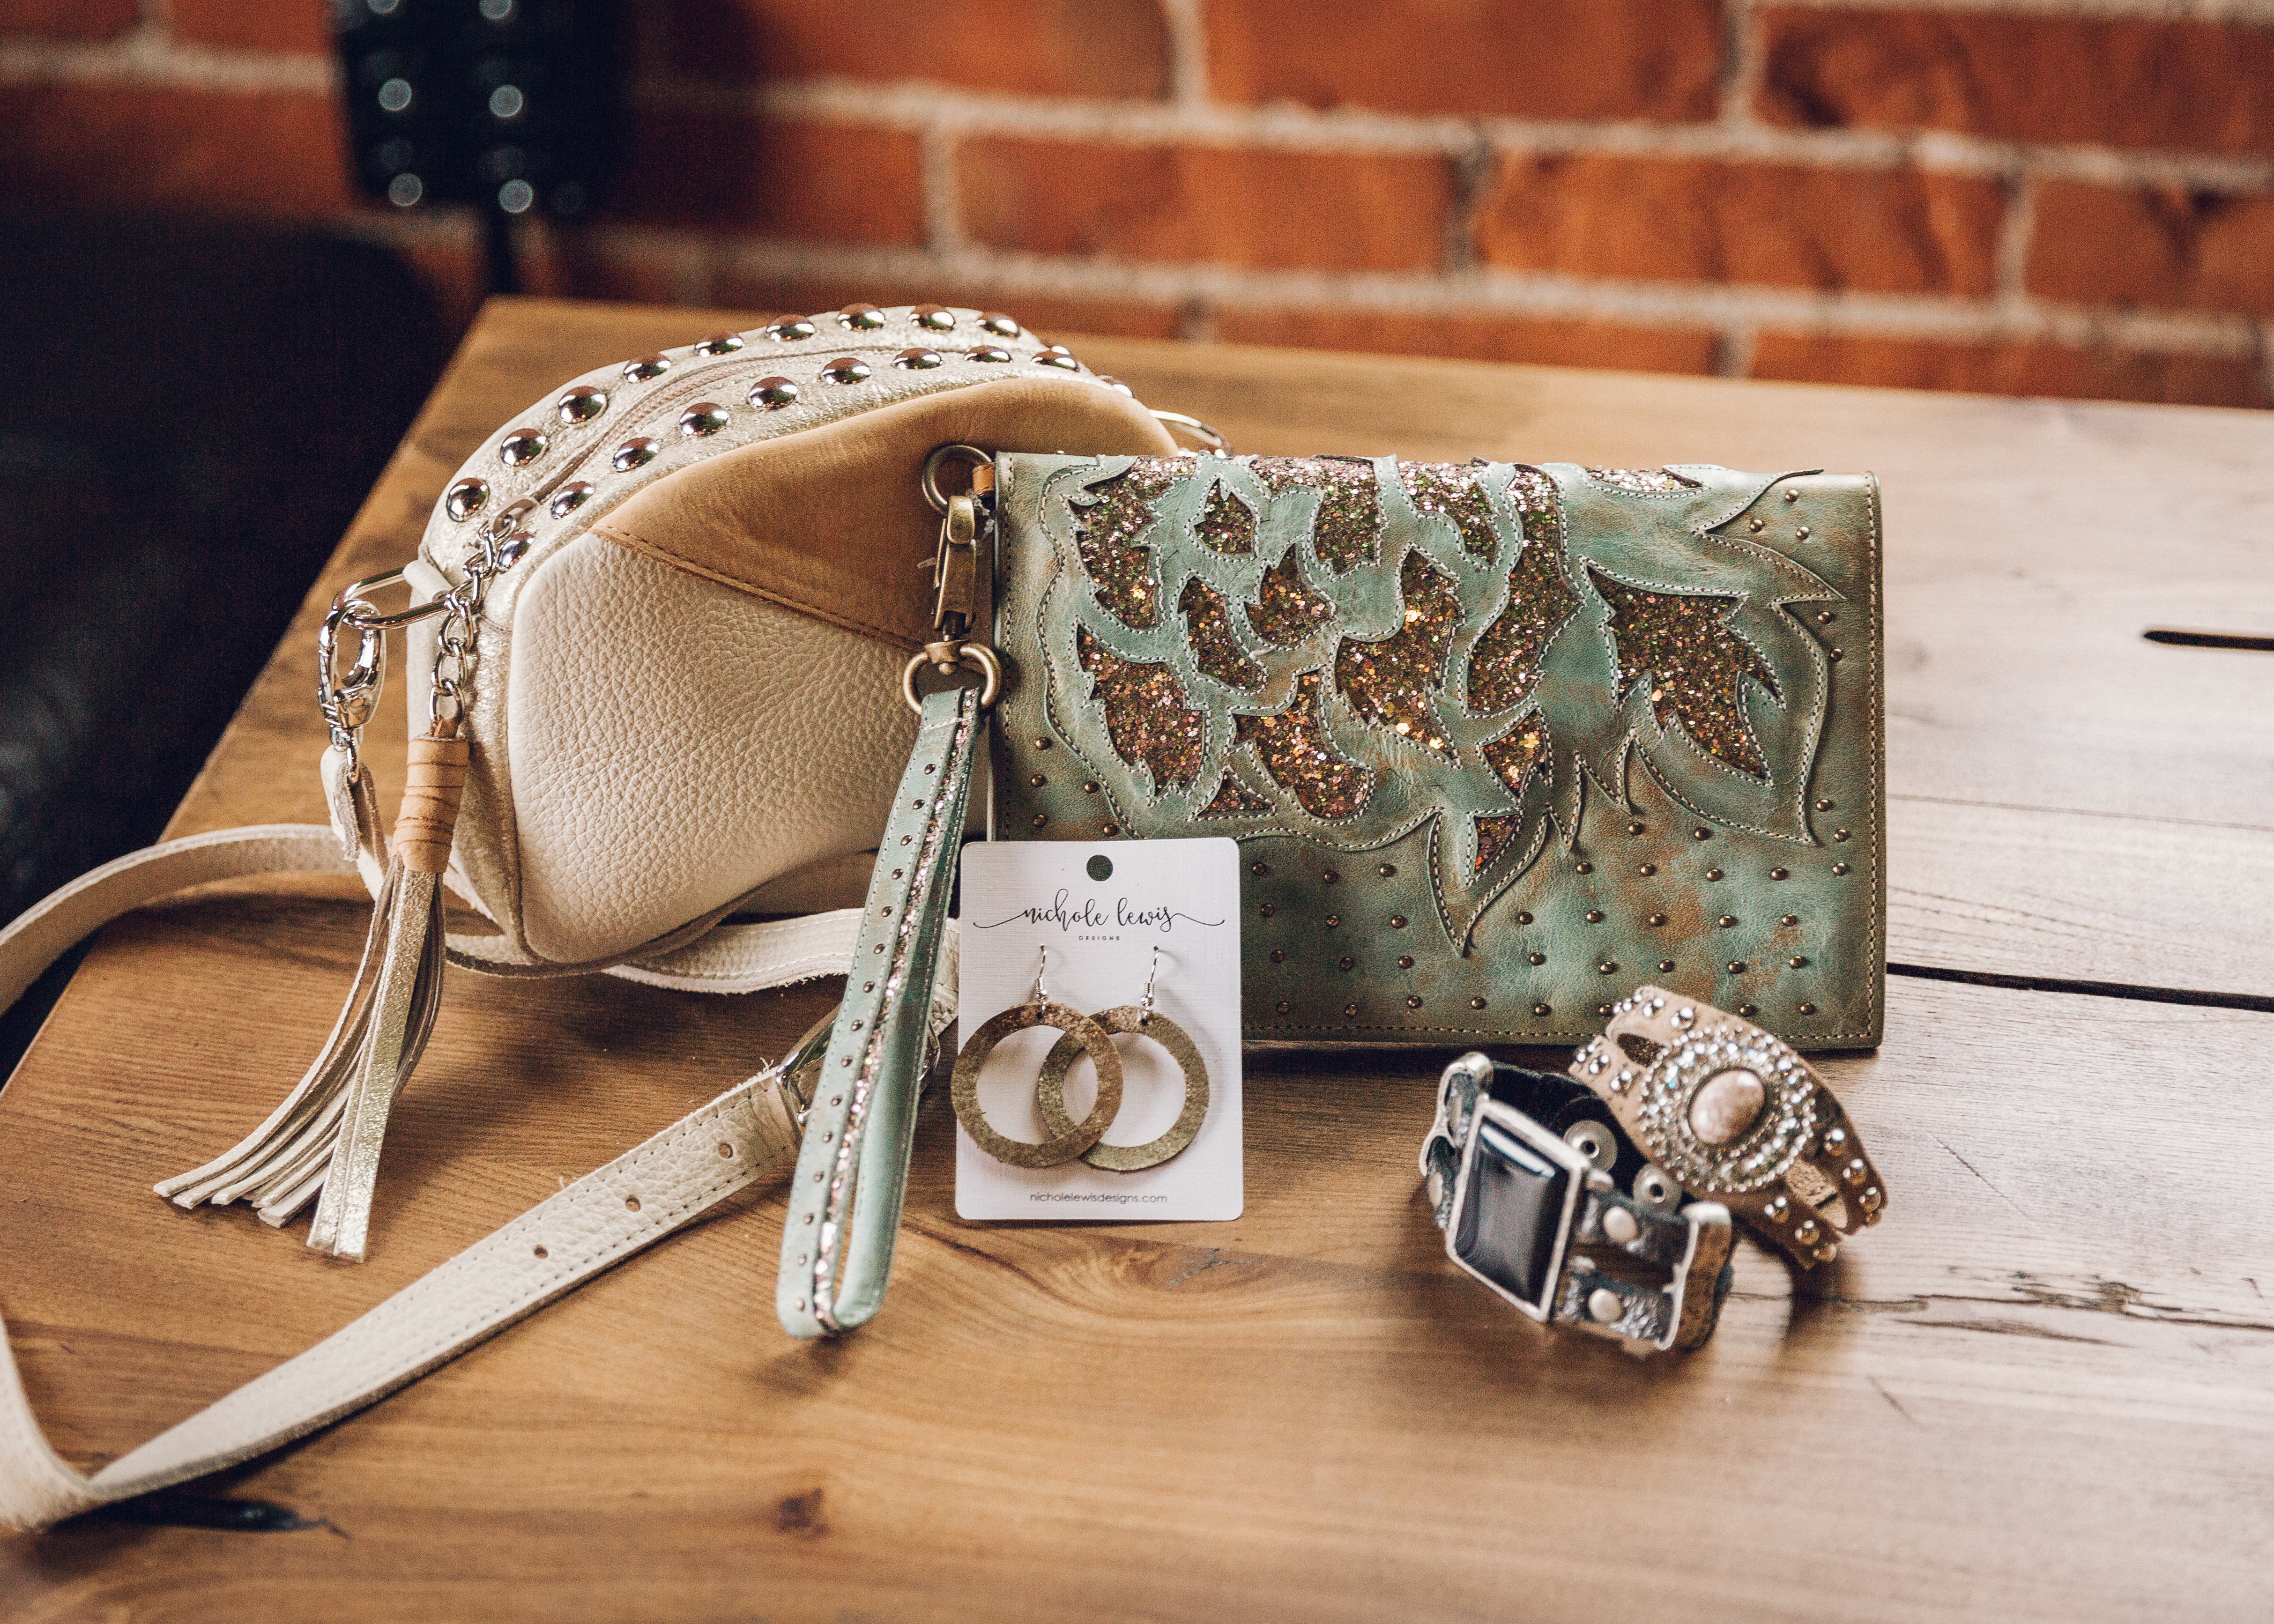 Real leather accessories from Buckle